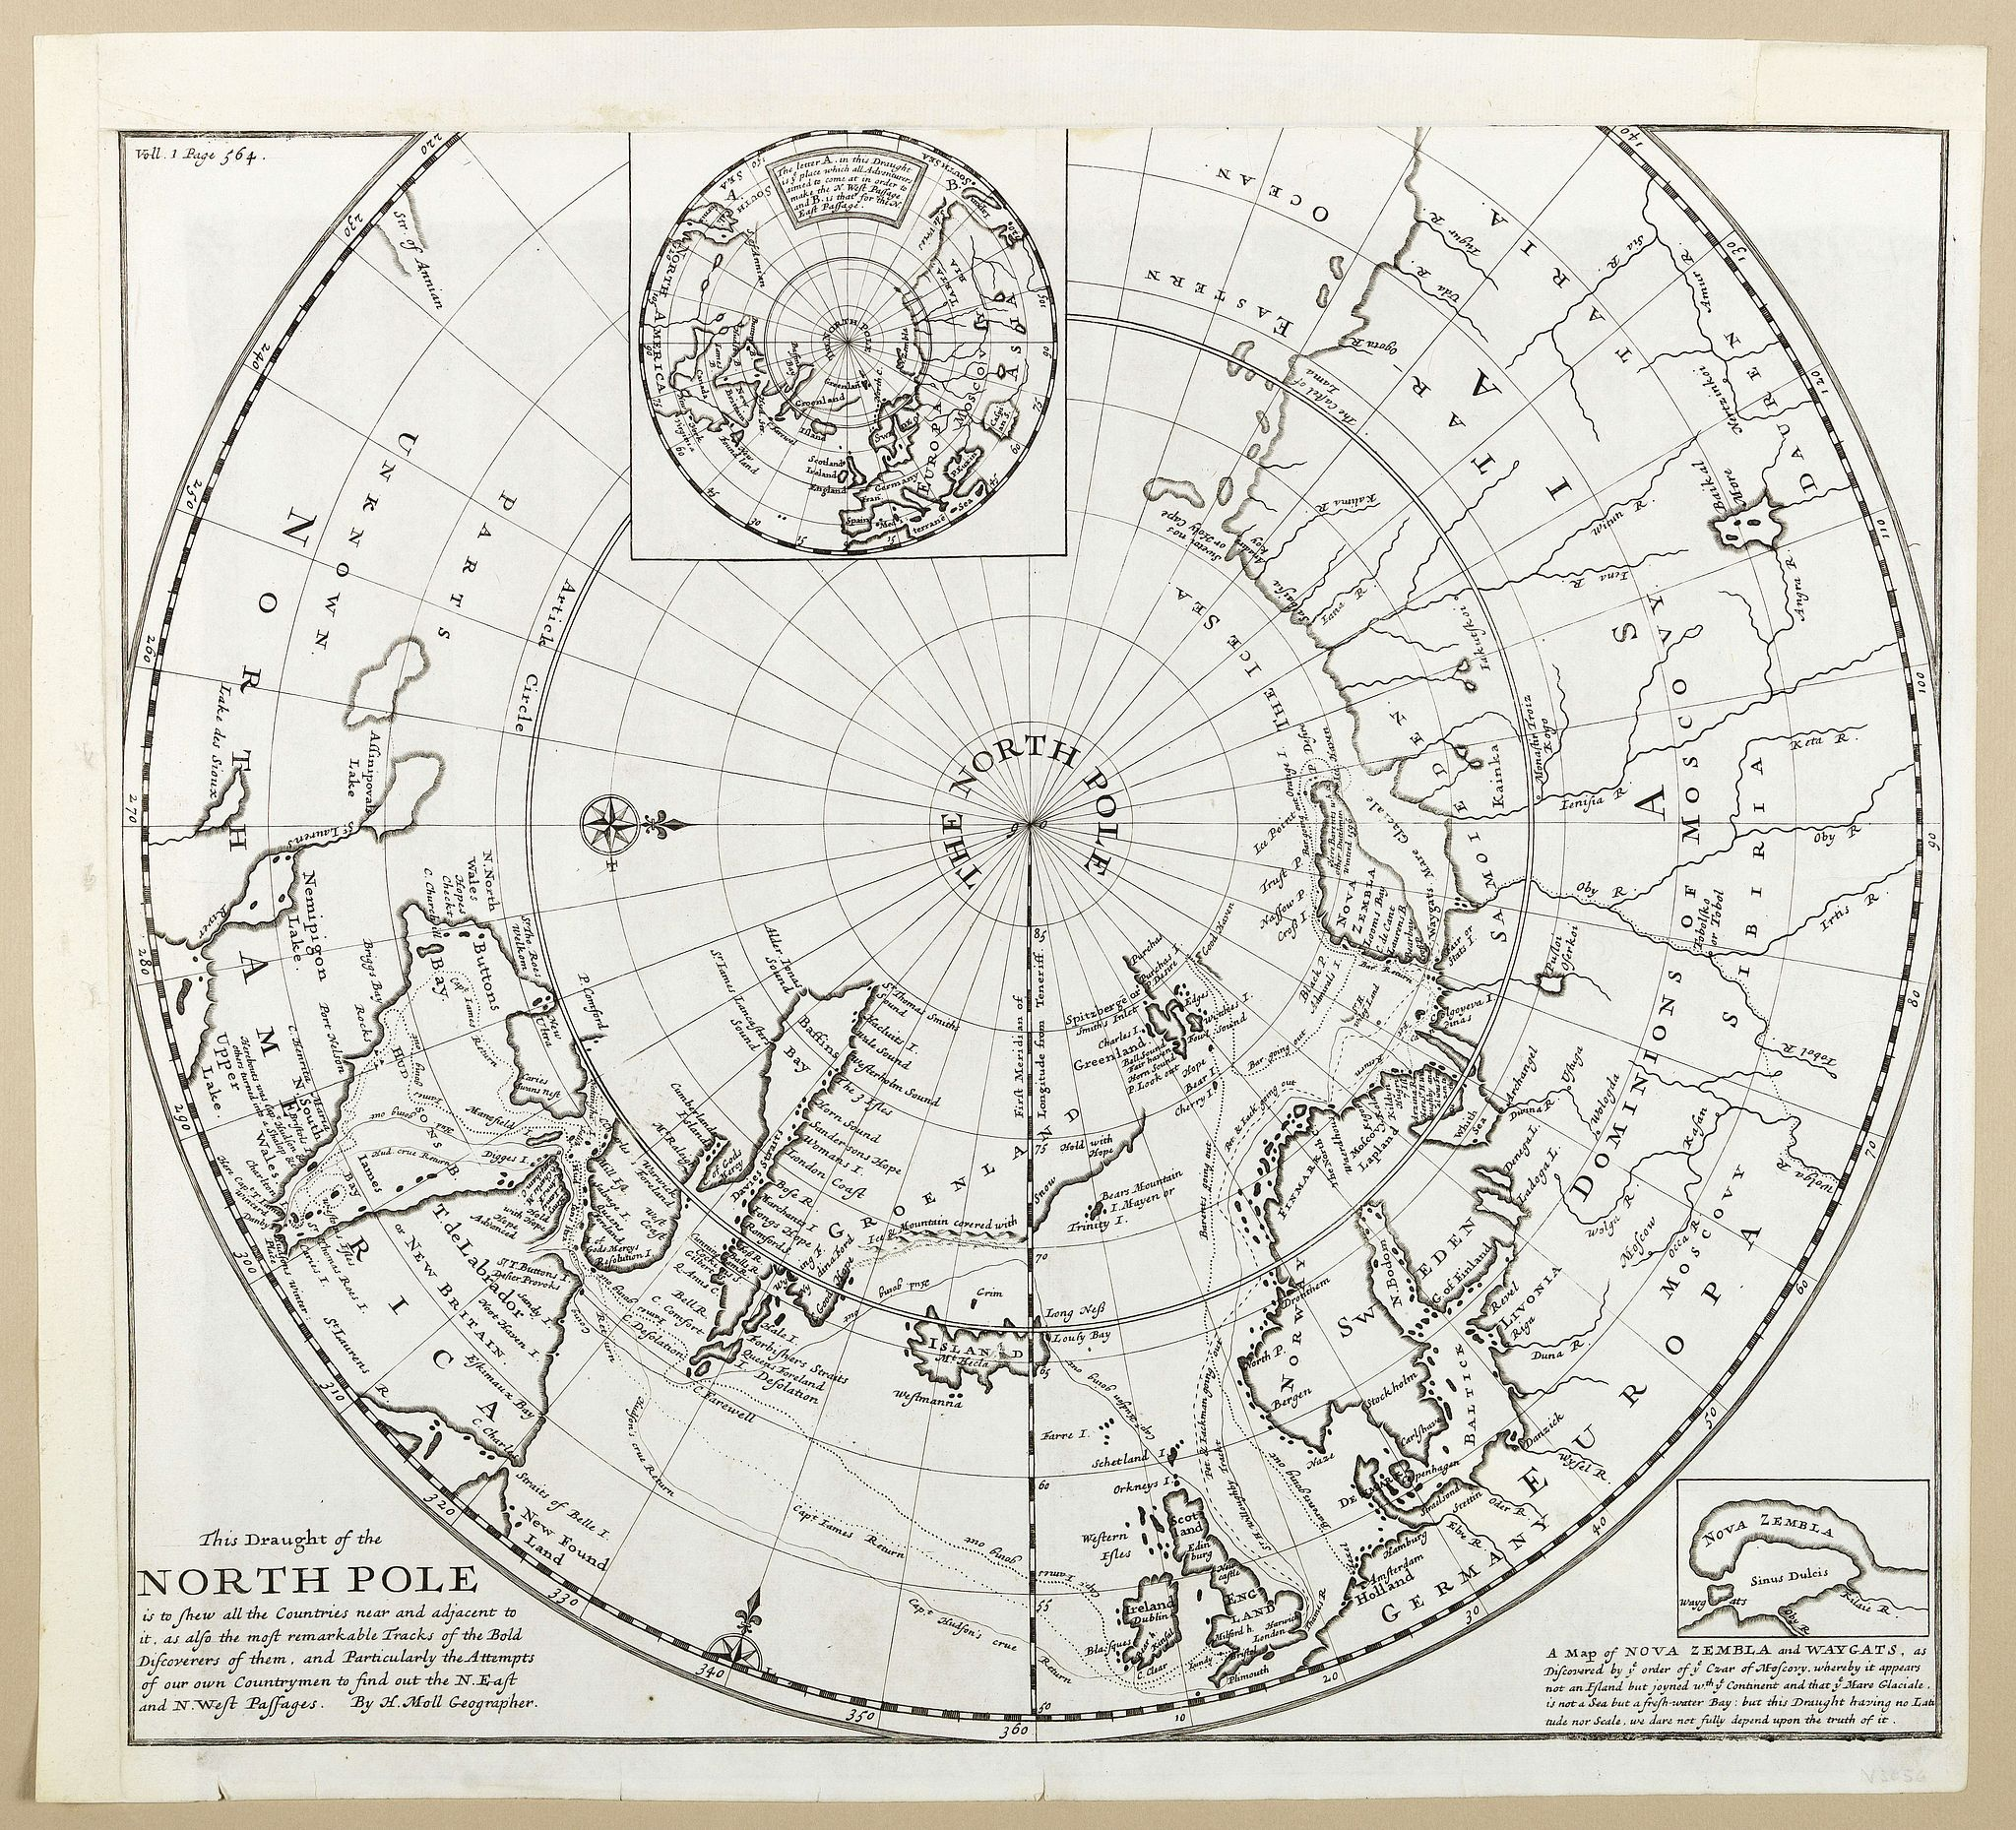 MOLL, H.,  This Draught of the North Pole is to show all the Countries near and adjacent to it . . ., antique map, old maps